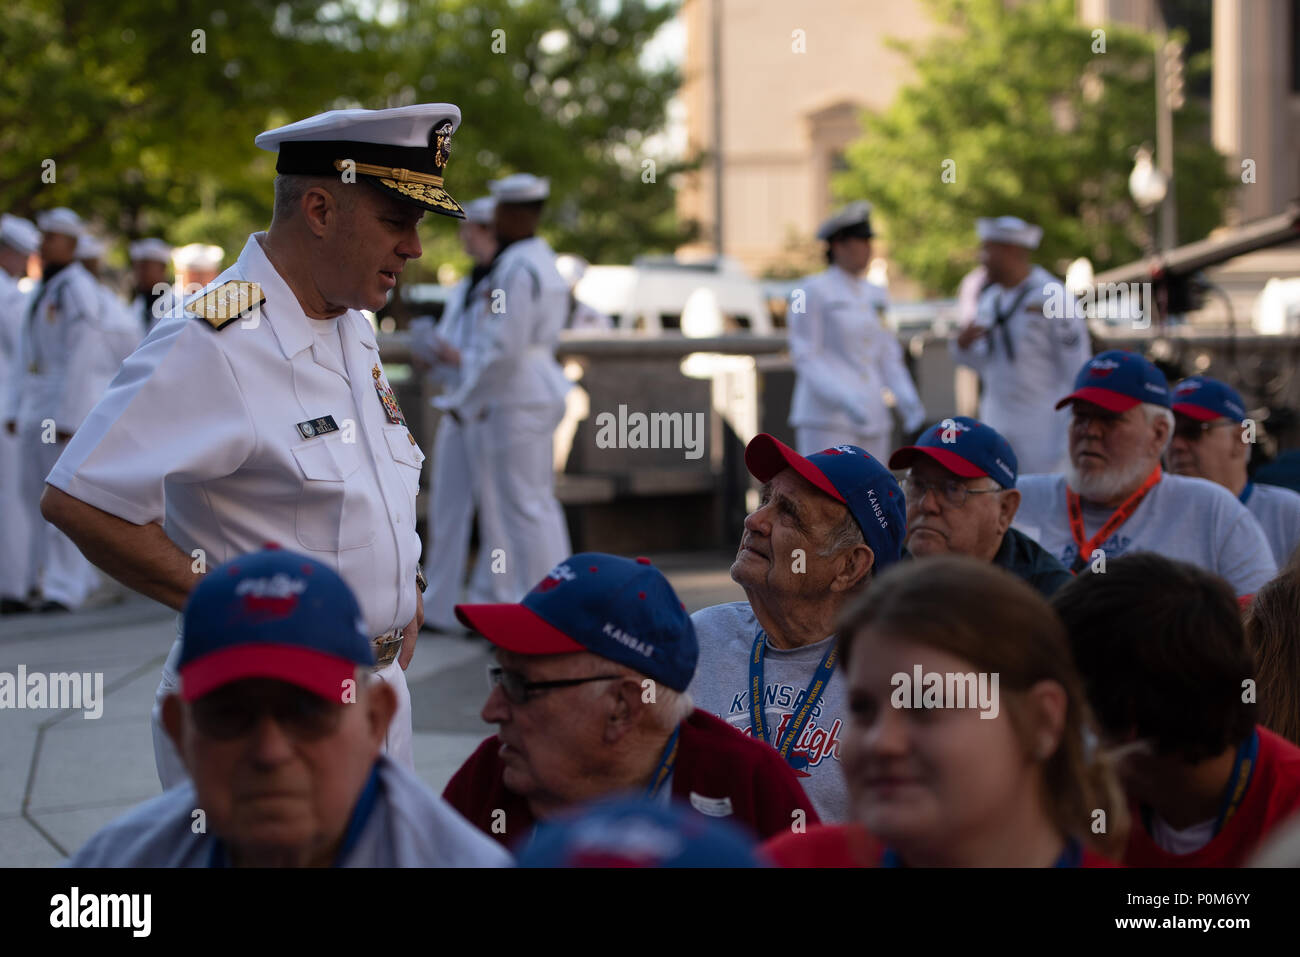 180605-N-HG258-1005 WASHINGTON (June 5, 2018) Members of the U.S. Navy Ceremonial band perform ceremonial music at the U.S. Navy Memorial in Washington, D.C., during the commemoration of the 76th anniversary of the Battle of Midway. The Battle of Midway began on June 4 in 1942 and stands as one of the U.S. Navy's most historically significant naval battles. Fought on the high seas of the Pacific more than half a century ago, this battle altered the course of the war in the Pacific and thereby shaped the outcome of world events. (U.S. Navy photo by Senior Chief Musician Stephen Hassay/Released) - Stock Image